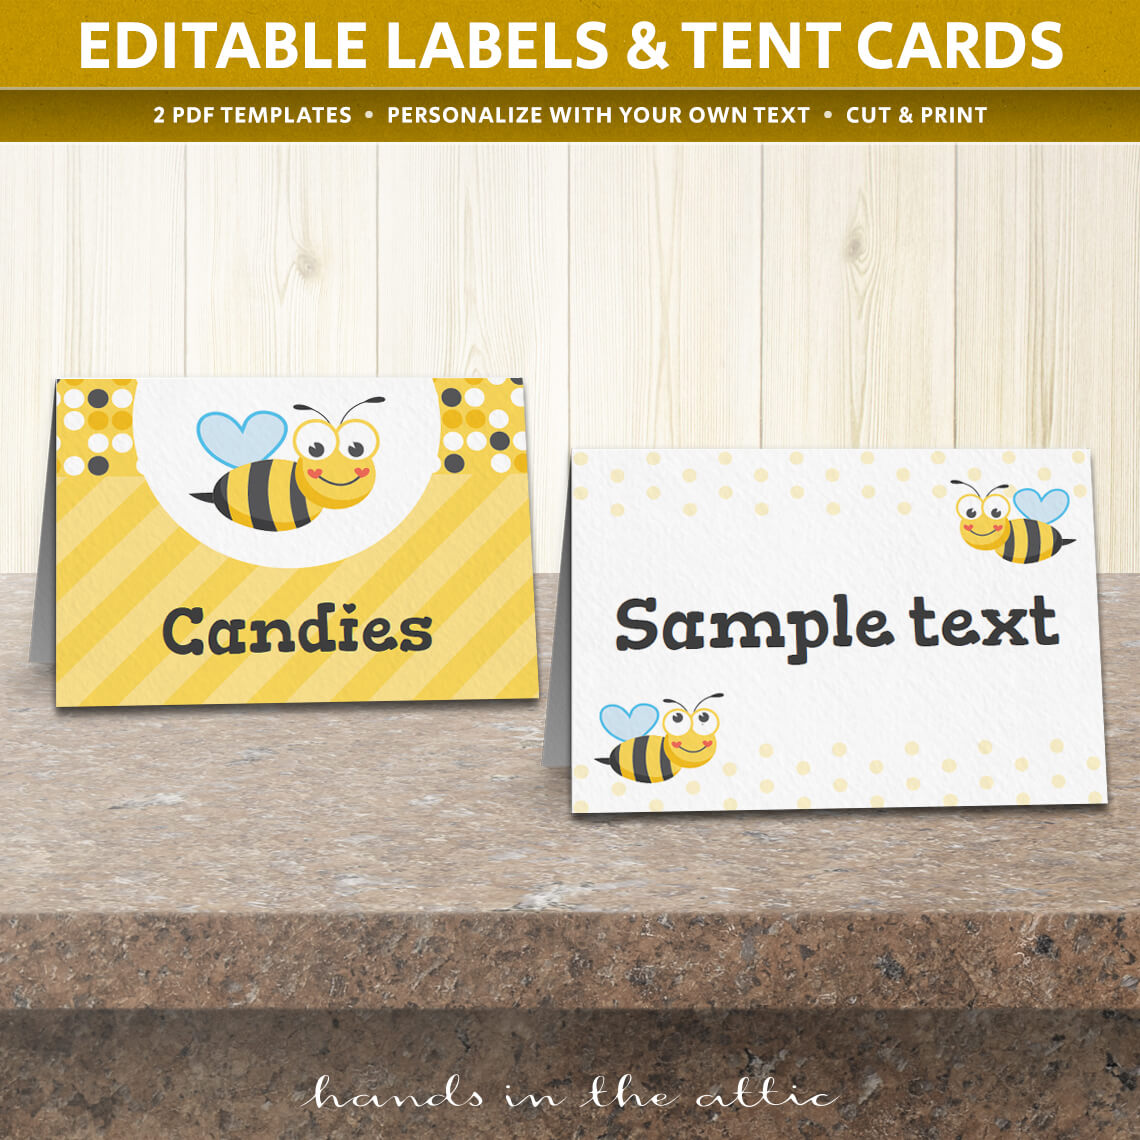 free easter party food labels printable download hands in the attic. Black Bedroom Furniture Sets. Home Design Ideas